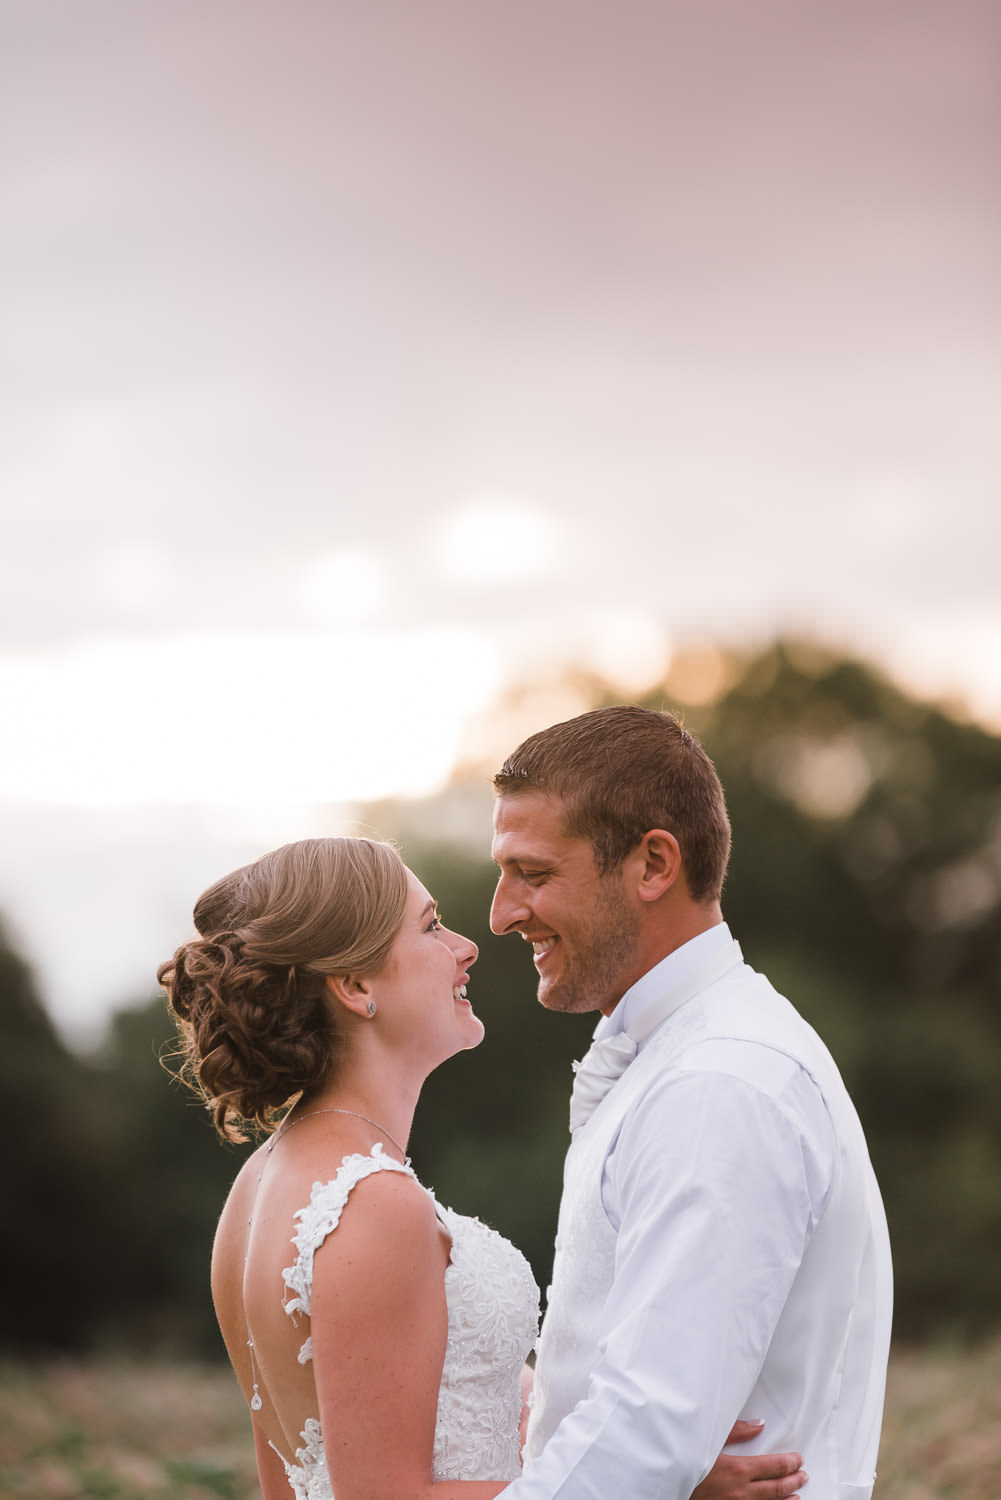 Newlyweds share an intimate moment at sunset during their evening party atat Wethele Manor.